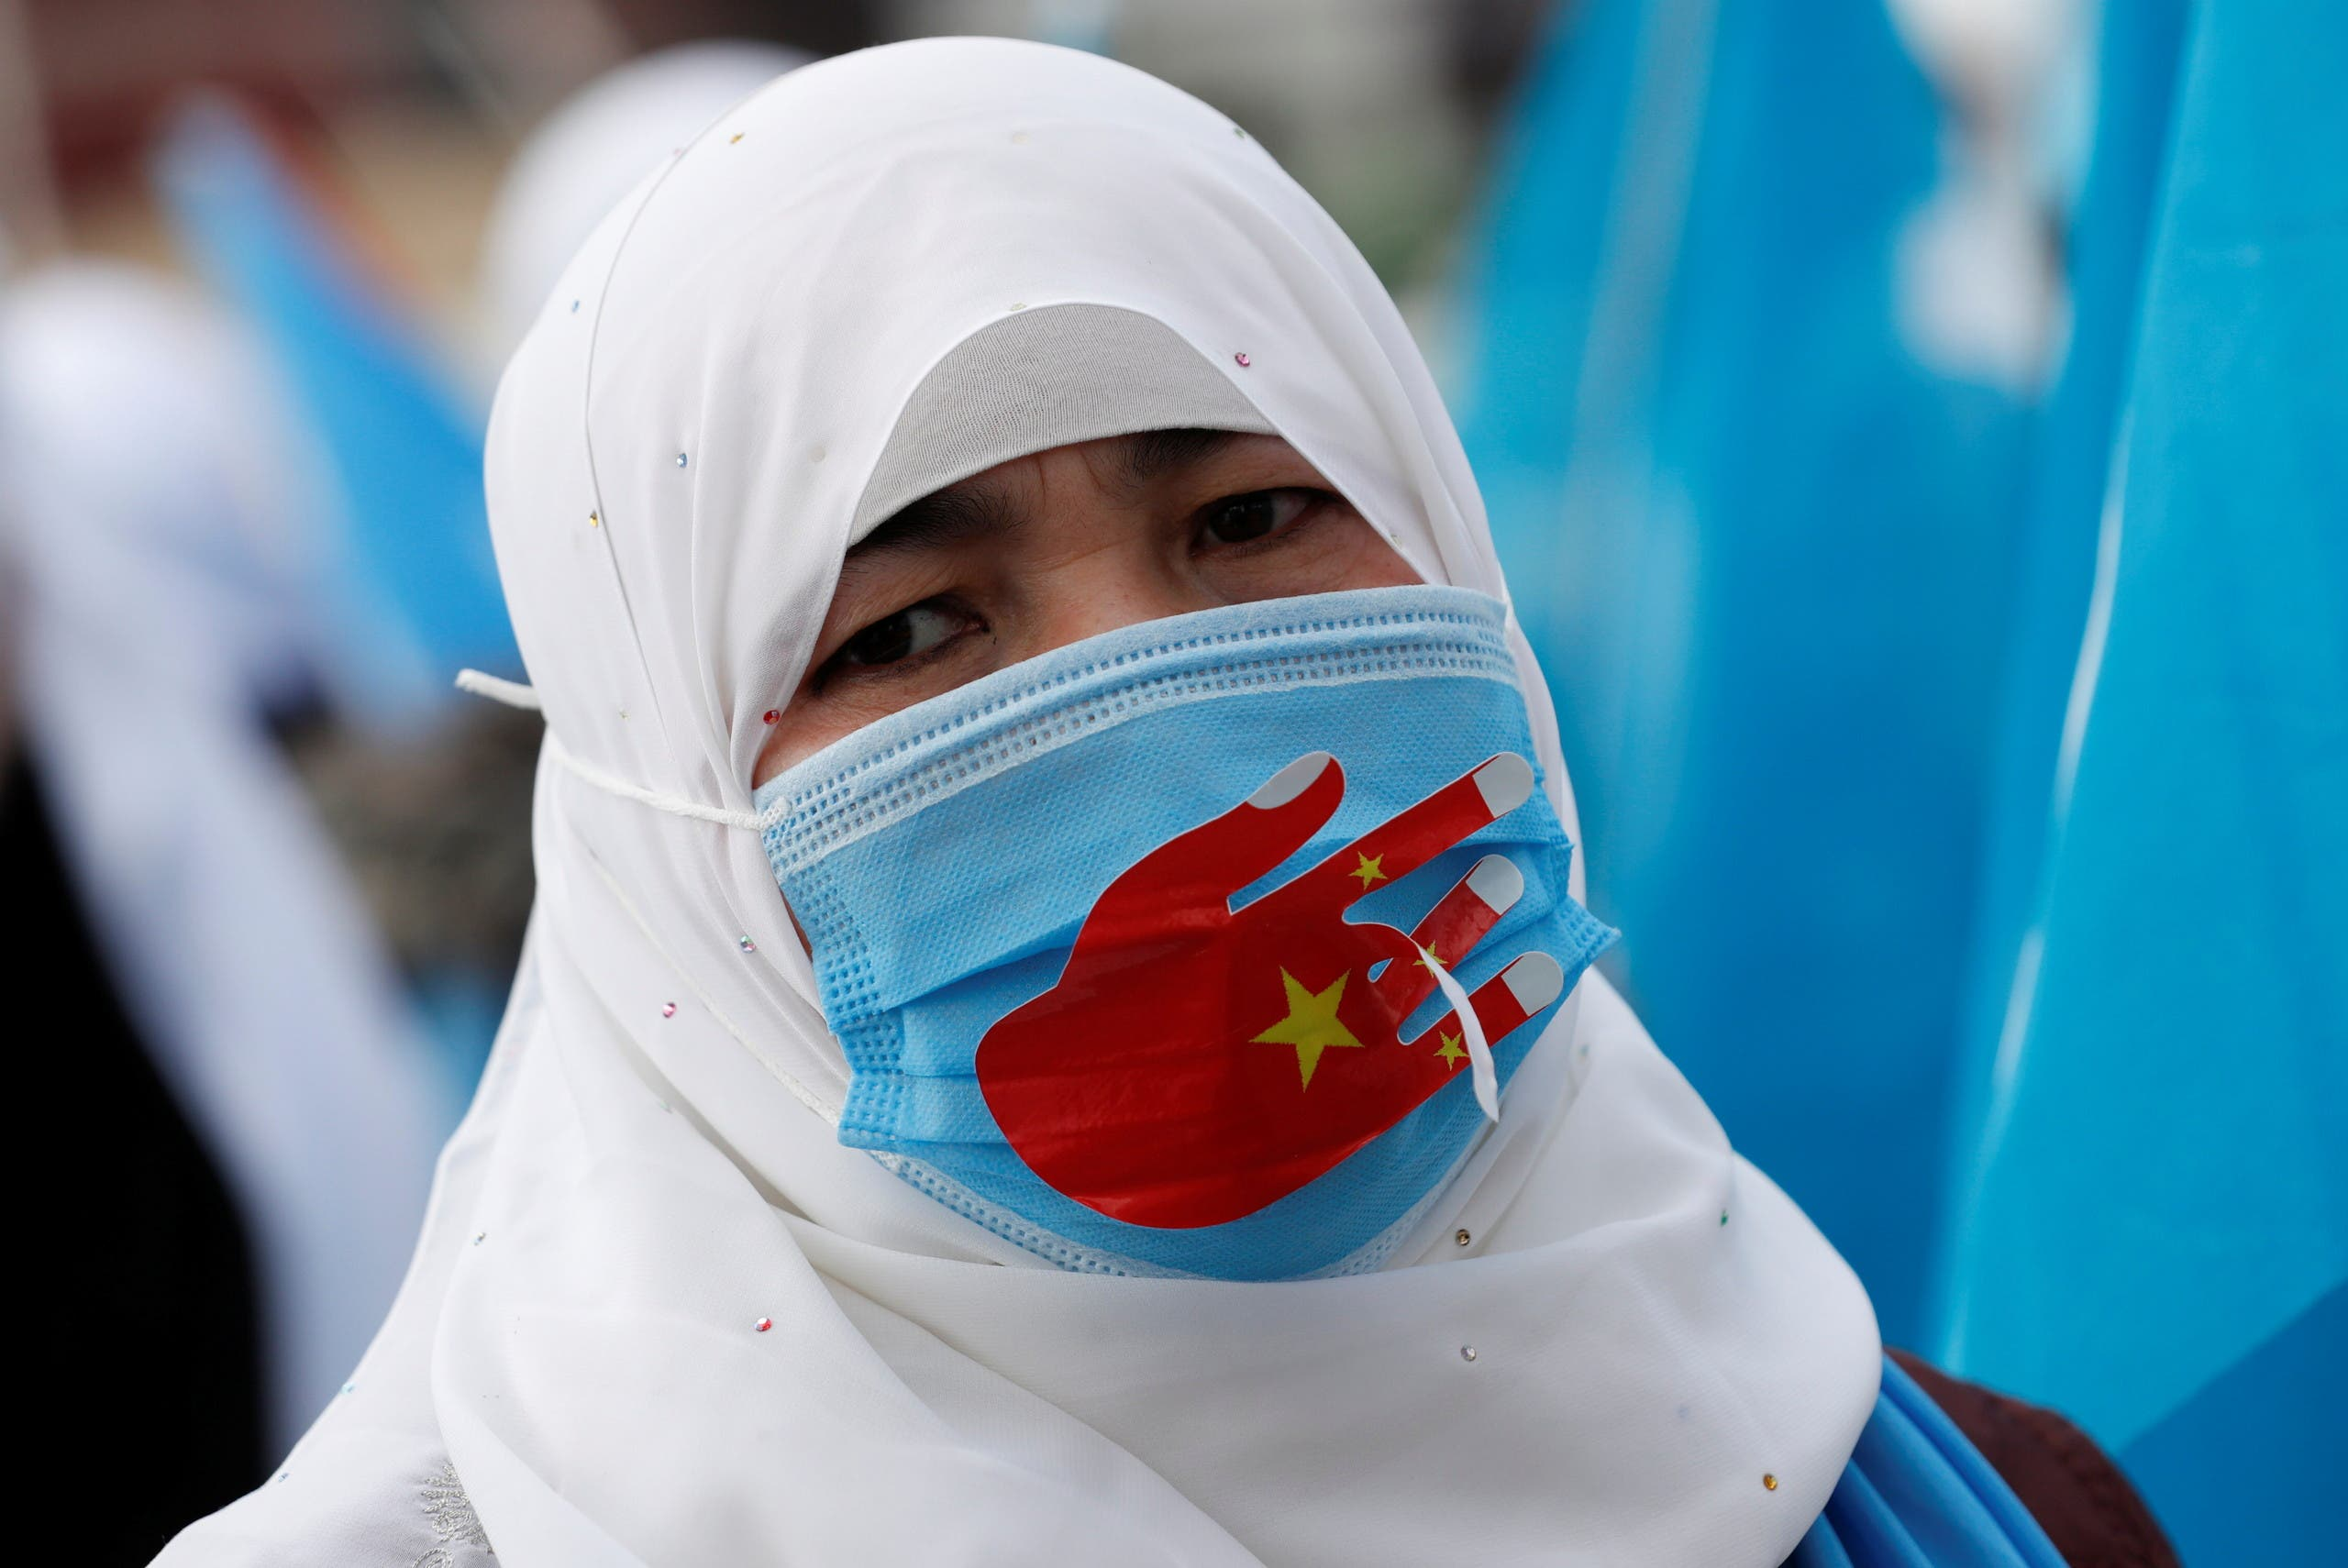 An Ethnic Uighur demonstrator wearing a protective face mask to prevent the spread of the coronavirus disease (COVID-19), takes part in a gathering on the occasion of International Women's Day to protest China's treatment of Uighurs, in Istanbul, Turkey March 8, 2021. (File photo: Reuters)